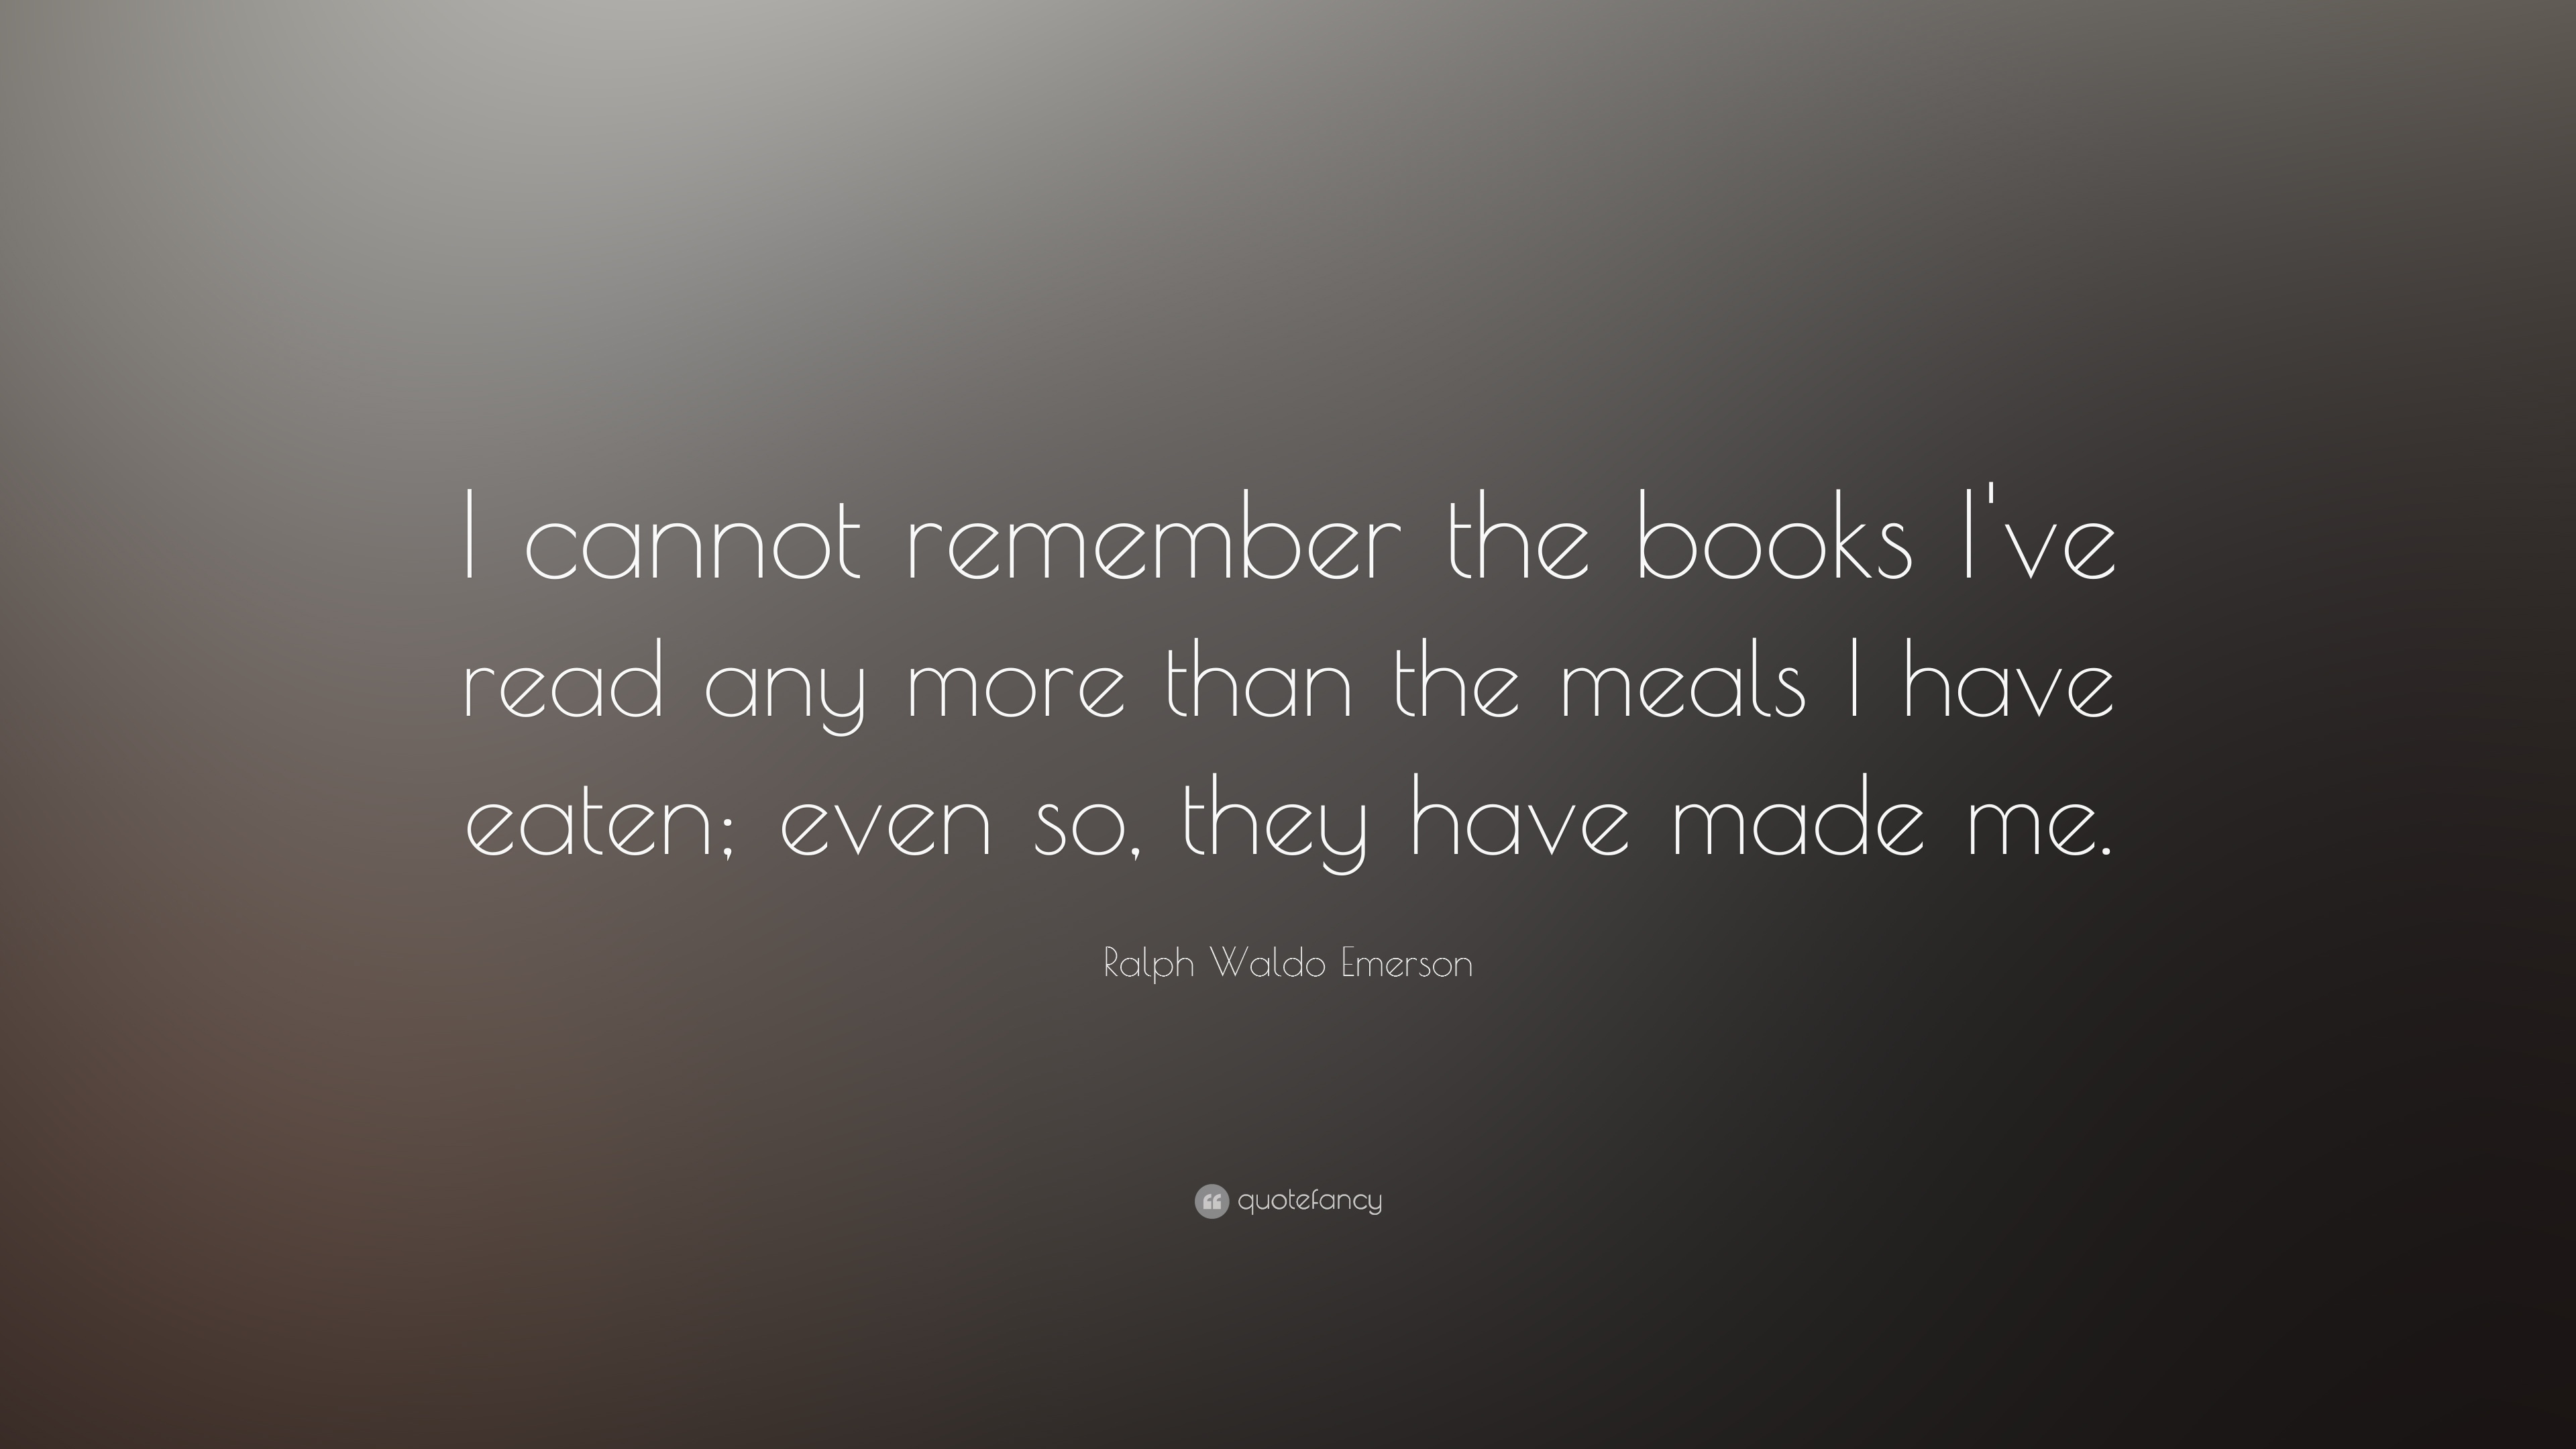 Marvelous Ralph Waldo Emerson Quote: U201cI Cannot Remember The Books Iu0027ve Read Any